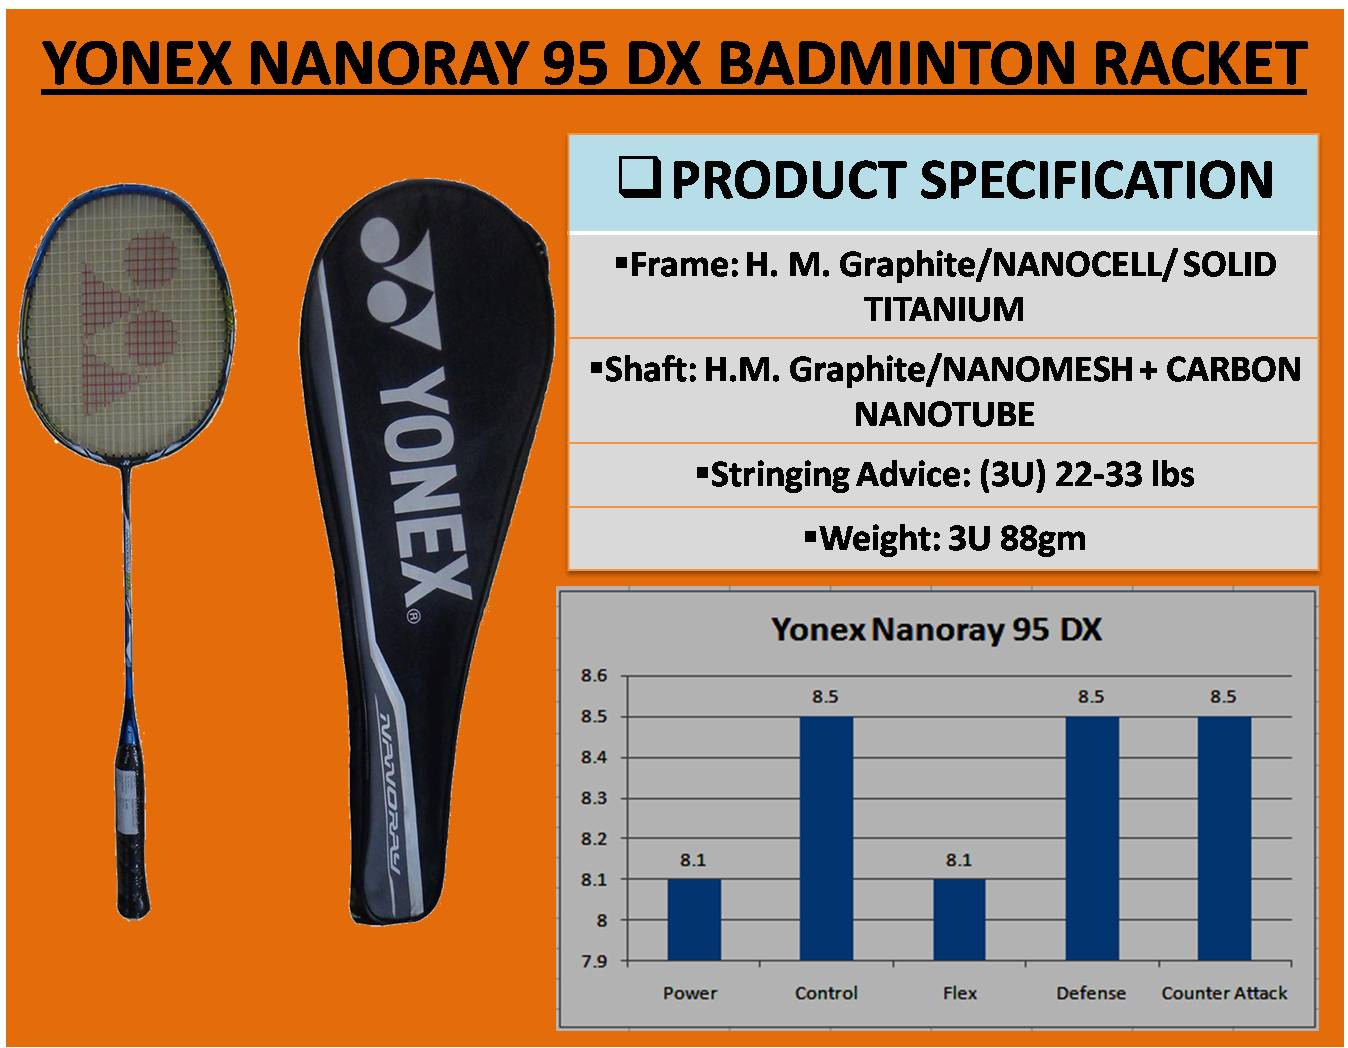 YONEX NANORAY 95 DX BADMINTON RACKET